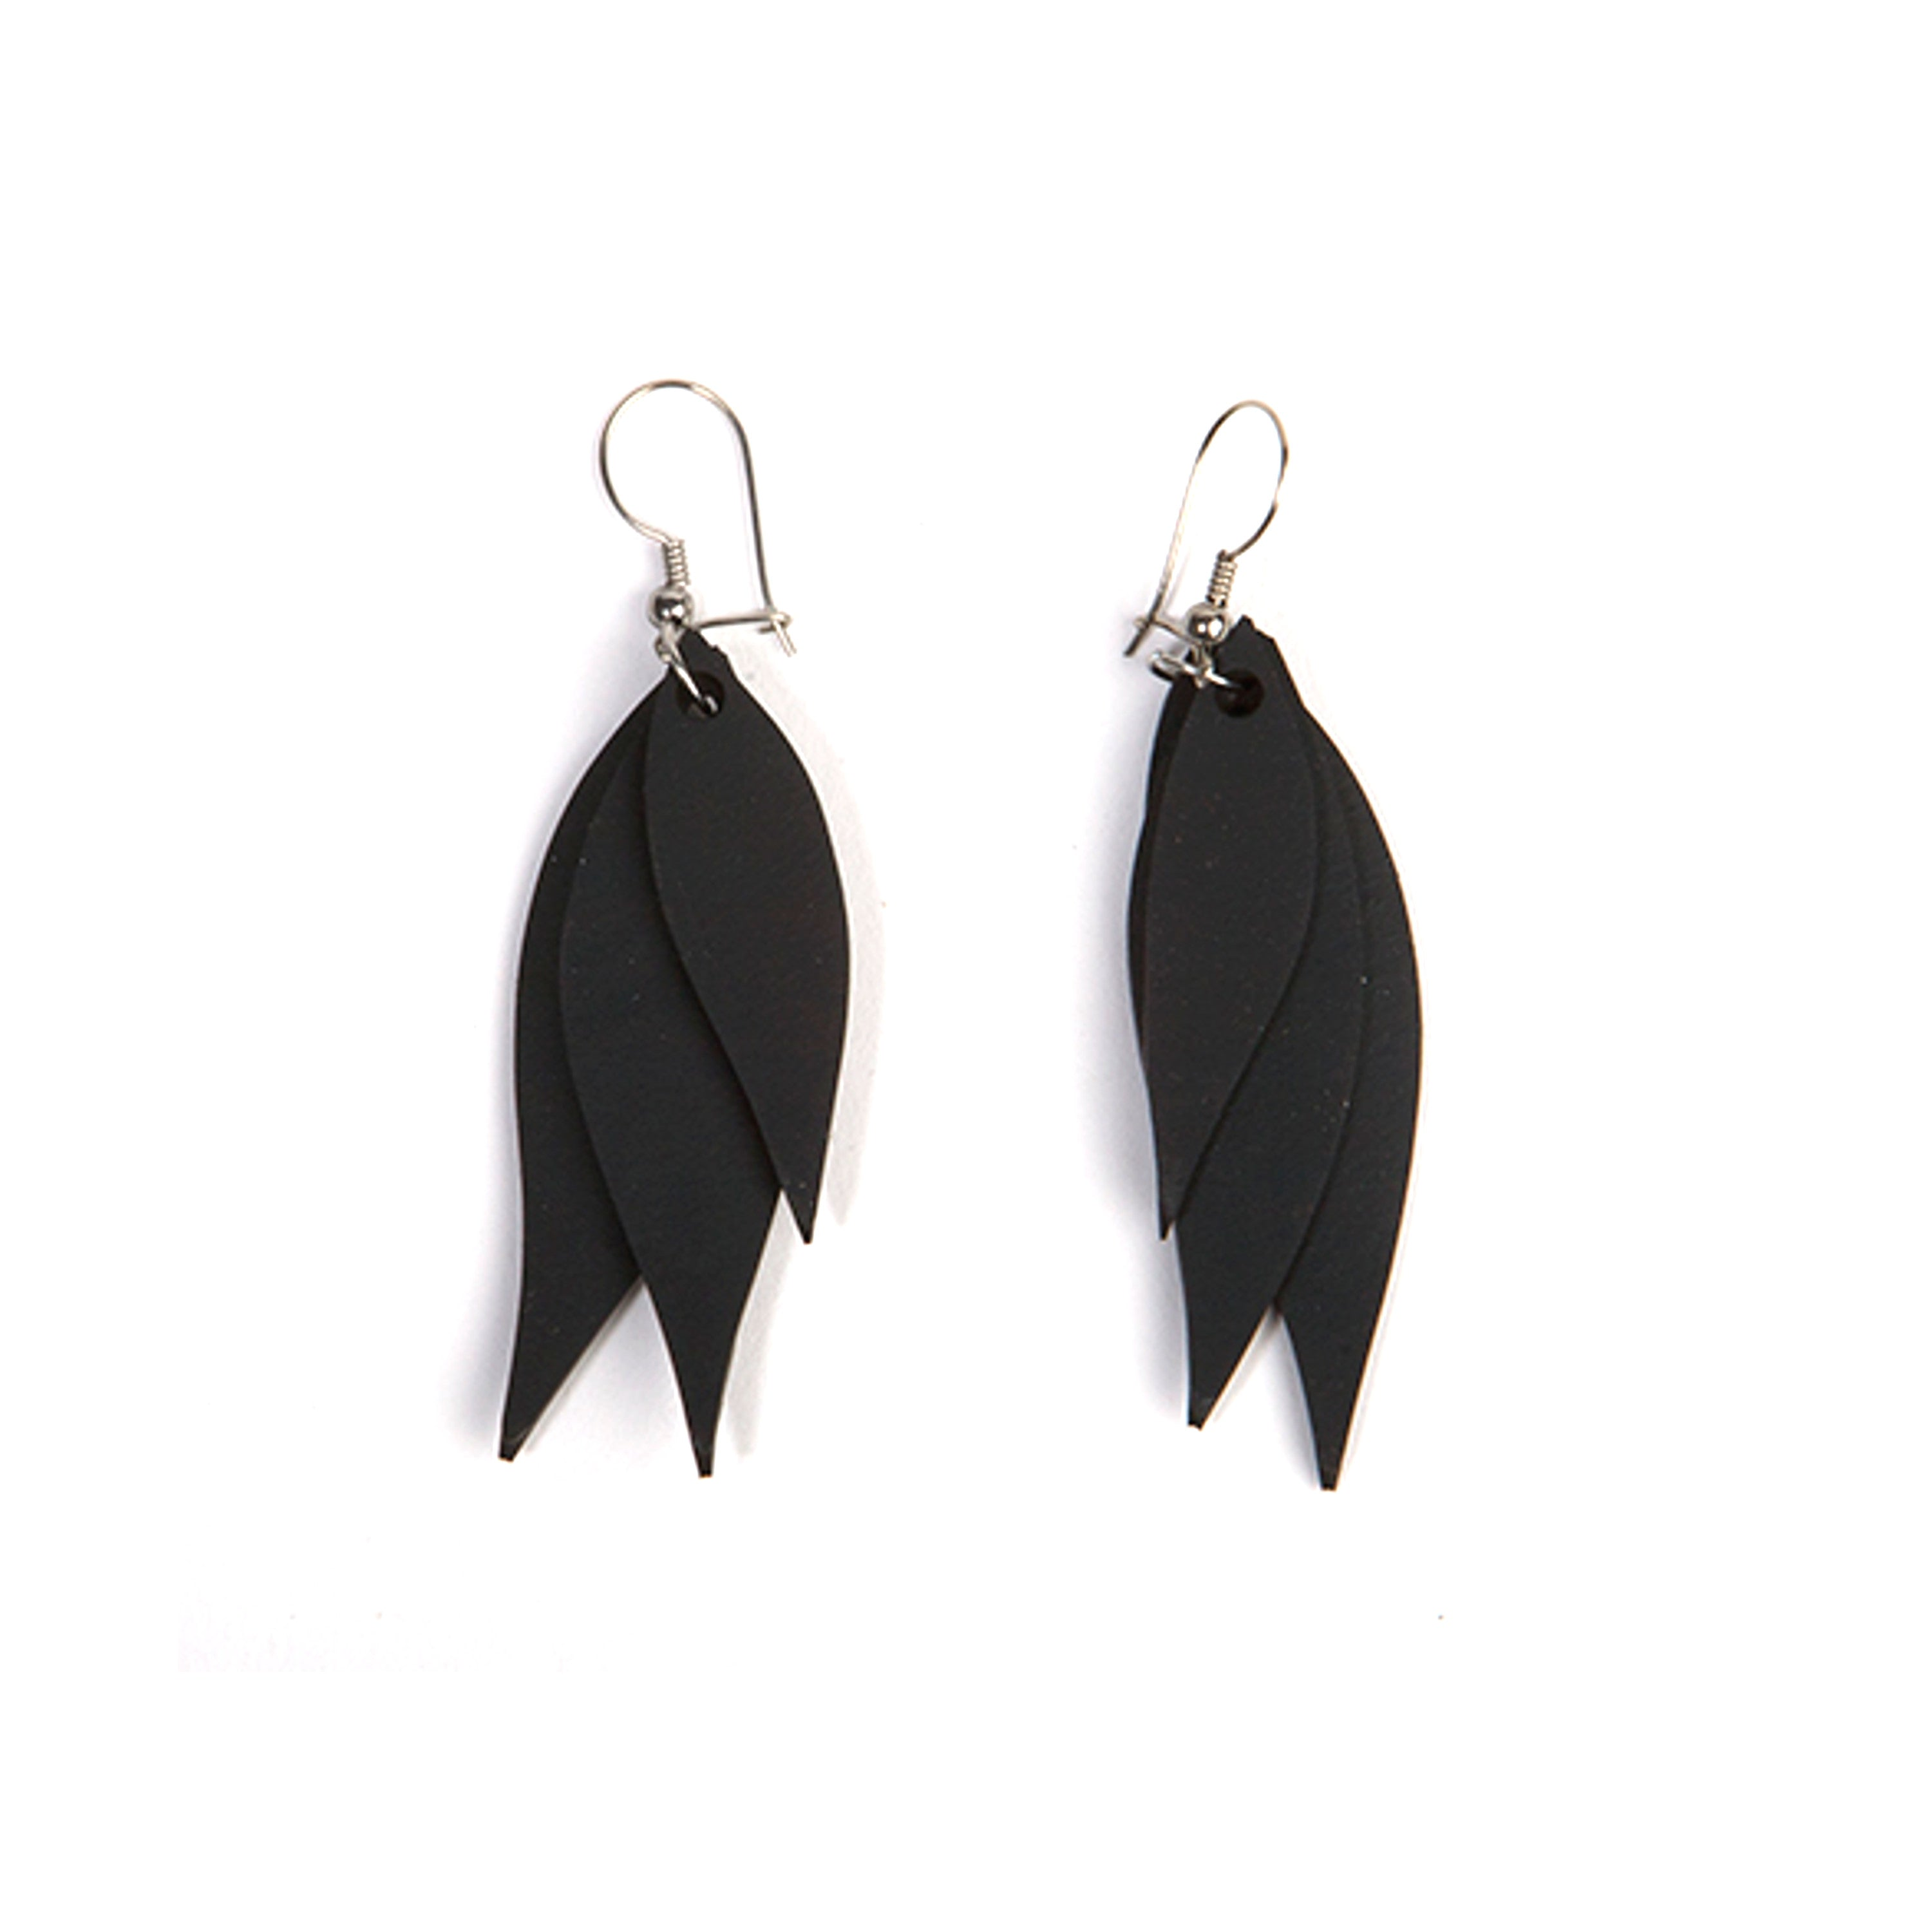 Flake Recycled Rubber Earrings by Paguro Upcycle